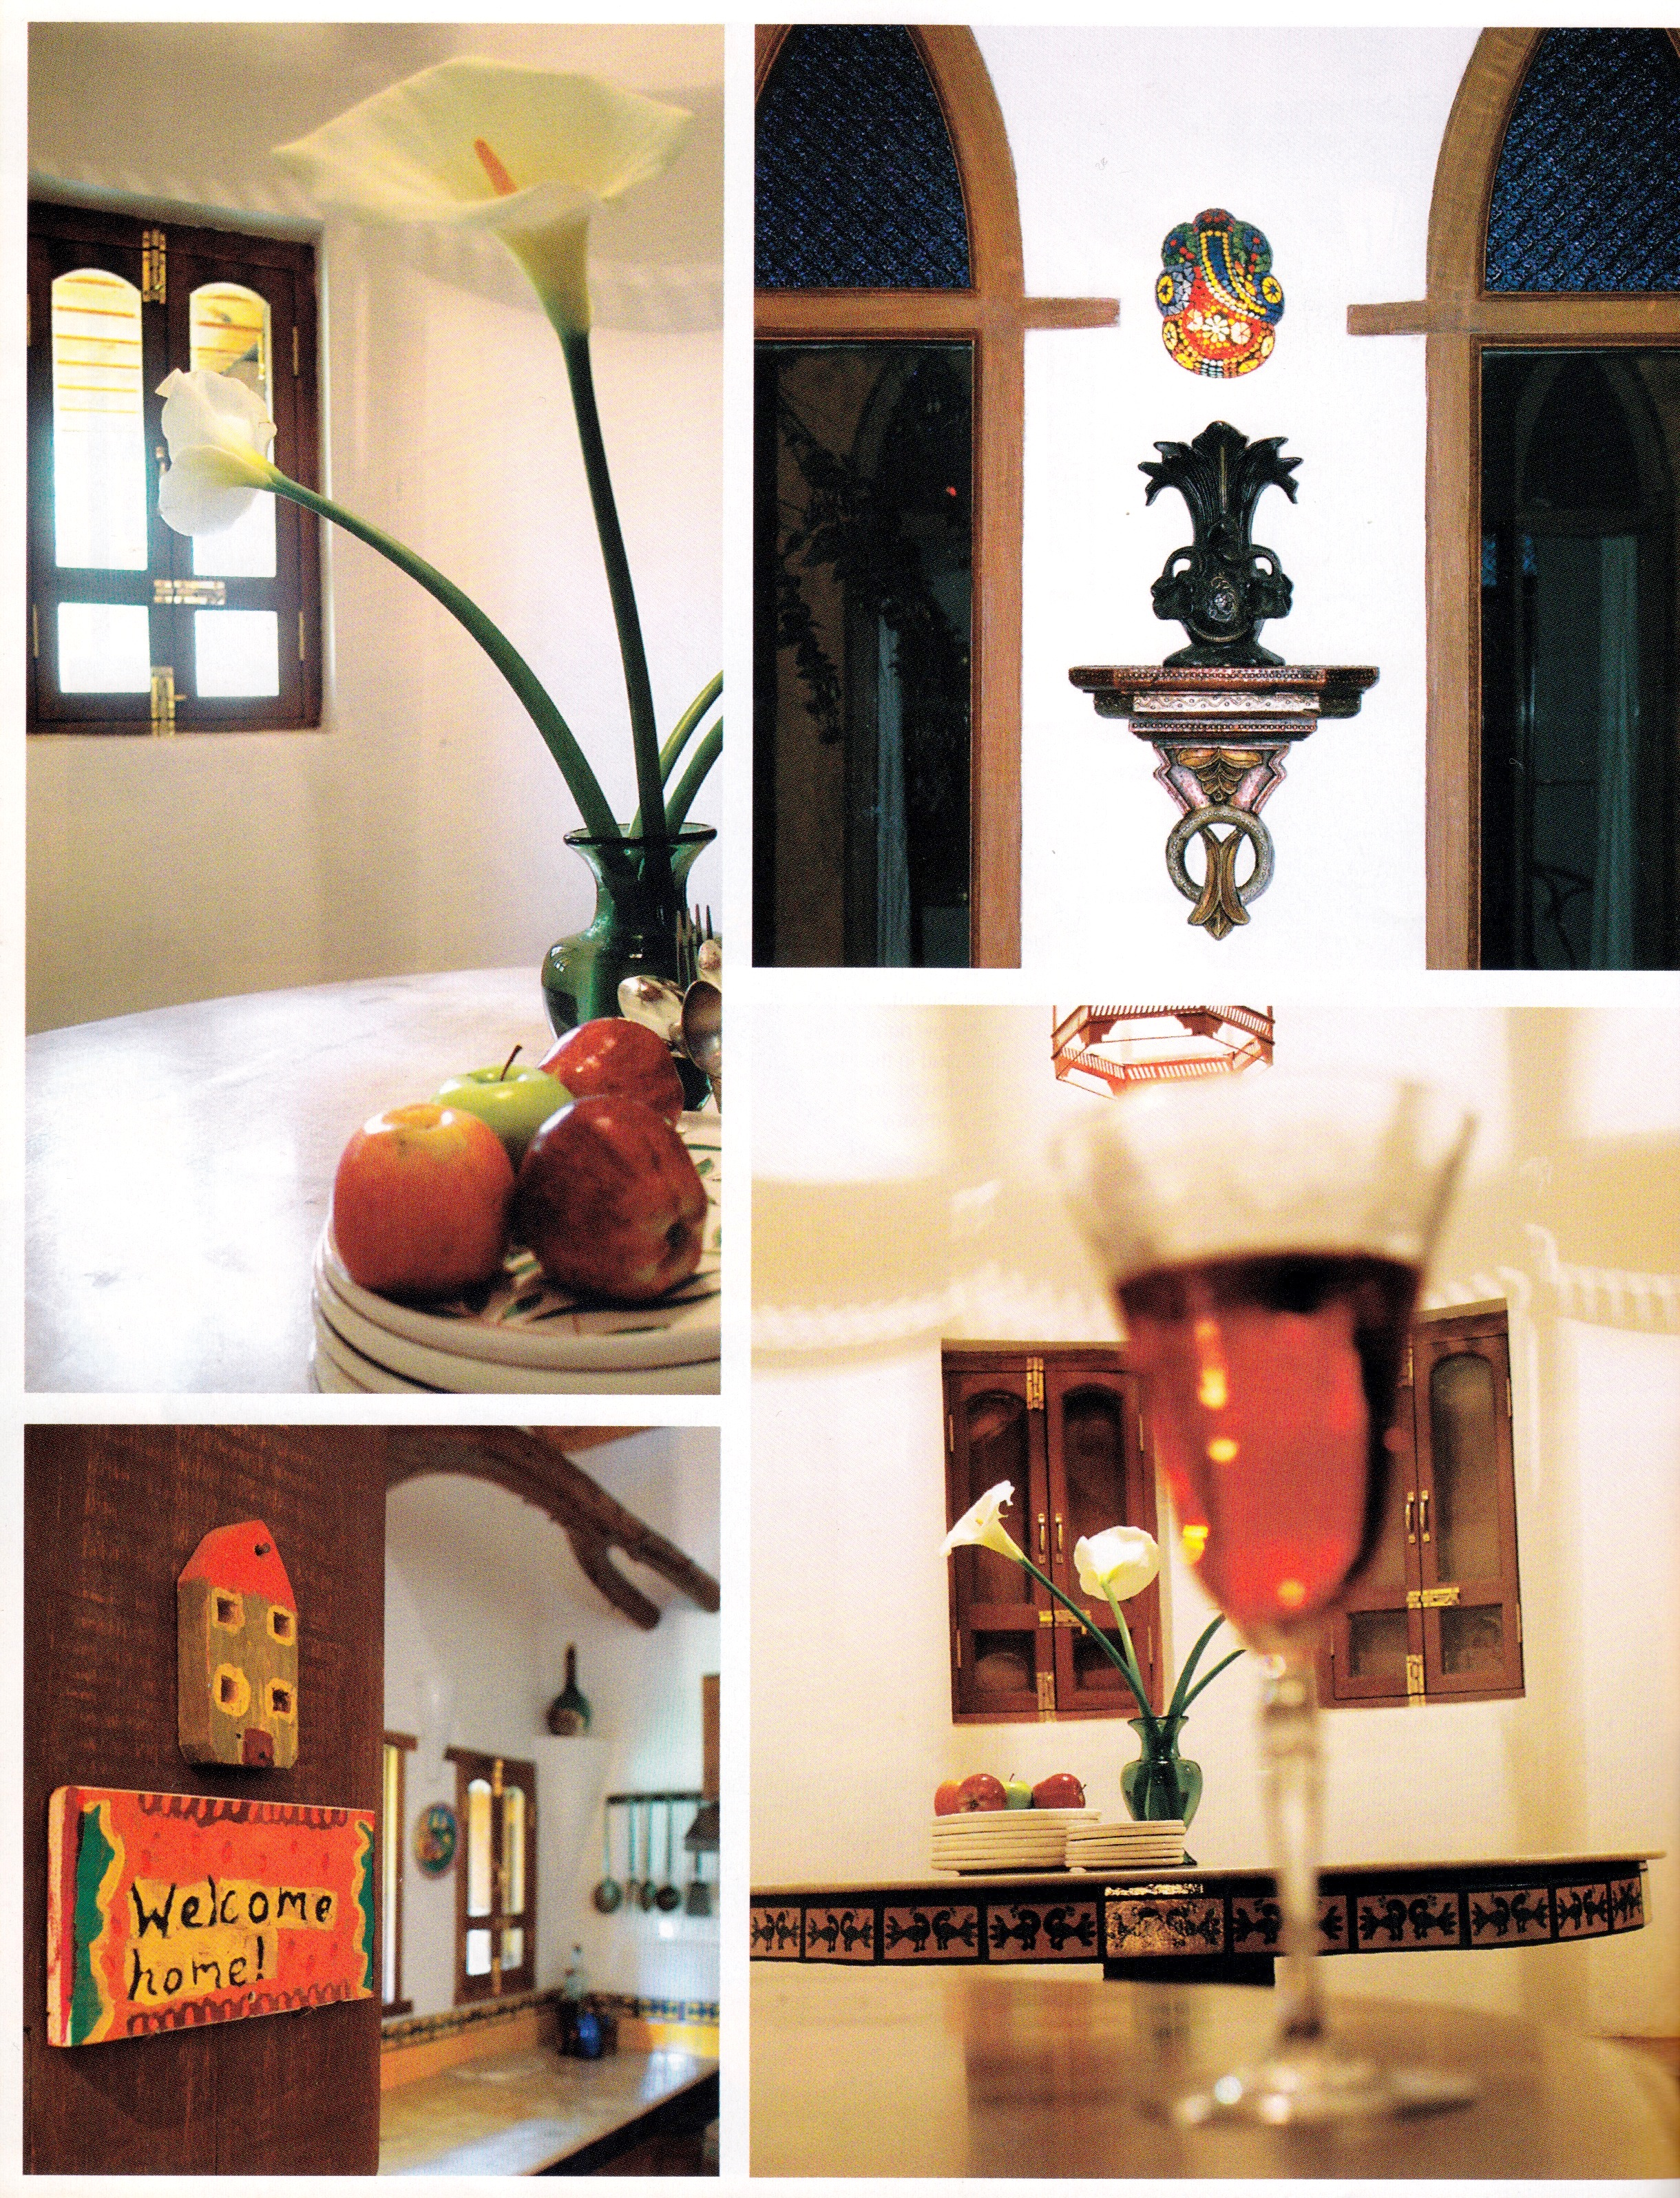 Cover story by IDEAL HOMES & GARDENS on keystone home design, nelson home design, byron home design, howes home design, jefferson home design, english home design, kingston home design, high-tech home design, group home design, perry home design, white home design, idea home design, crawford home design, hamilton home design, morgan home design, good home design, gray home design, exterior home house design, lexington home design, universal home design,